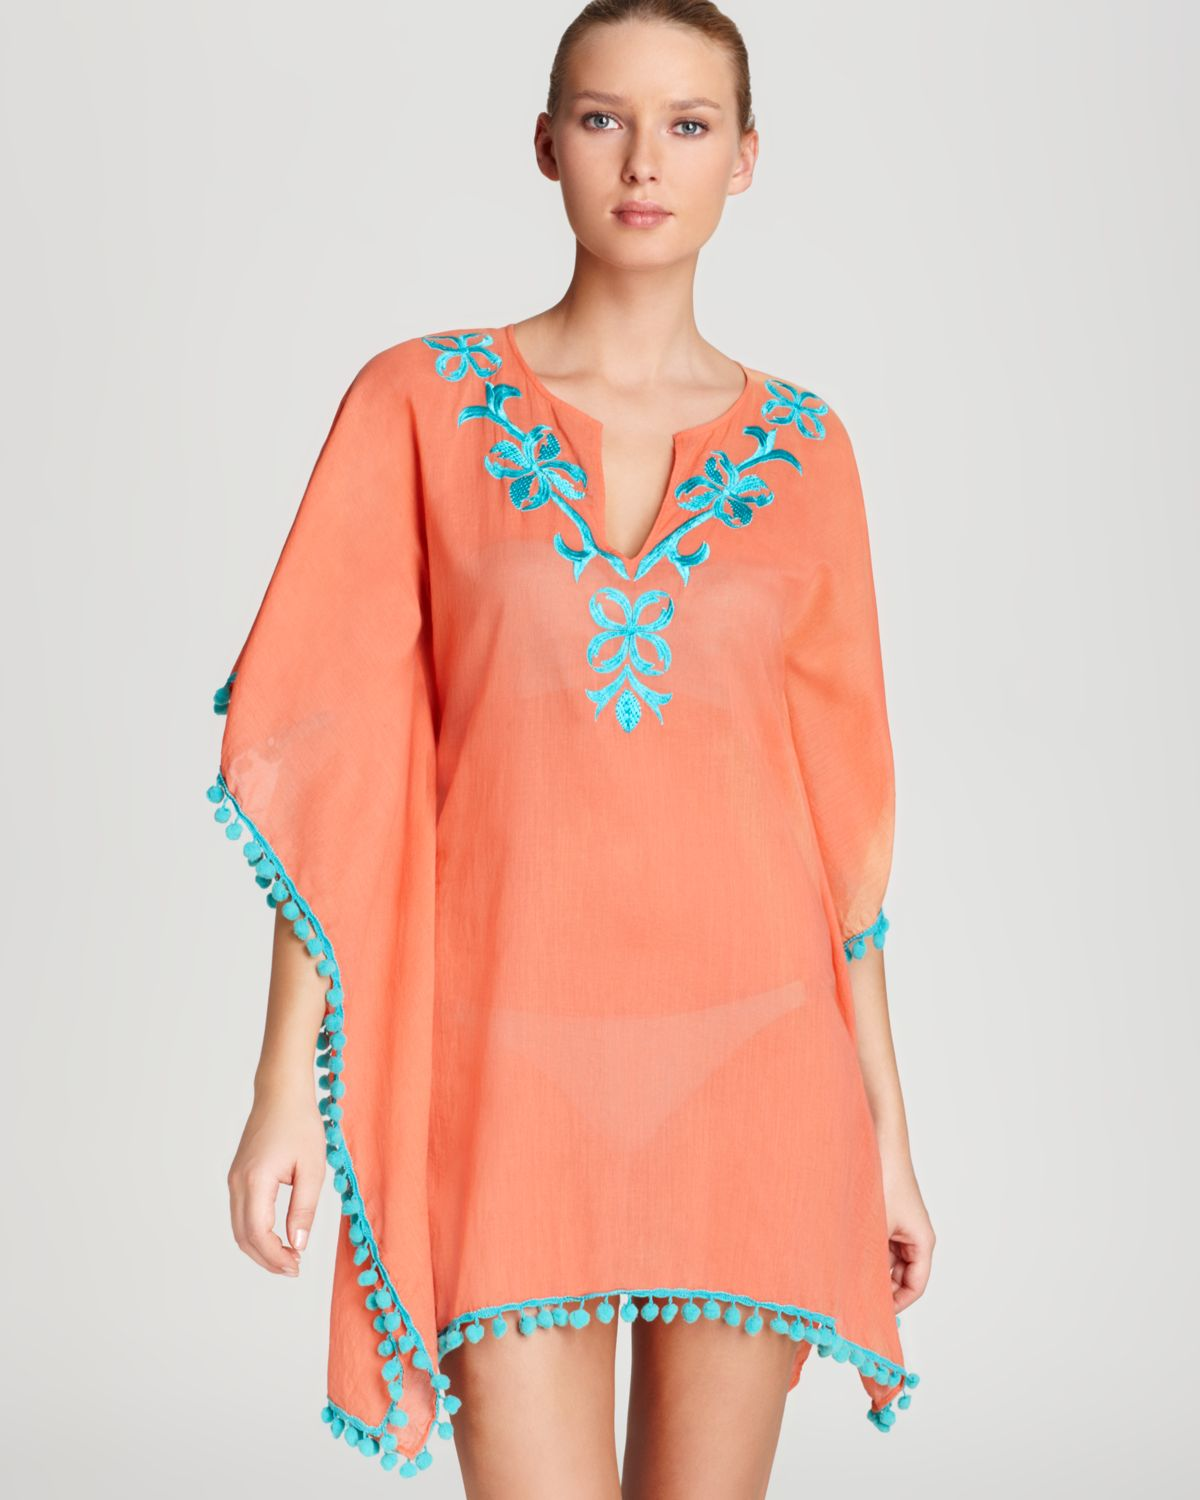 8a67d6923828d OndadeMar Swimsuit Cover Up Embroidered Pom Pom Tunic in Orange - Lyst